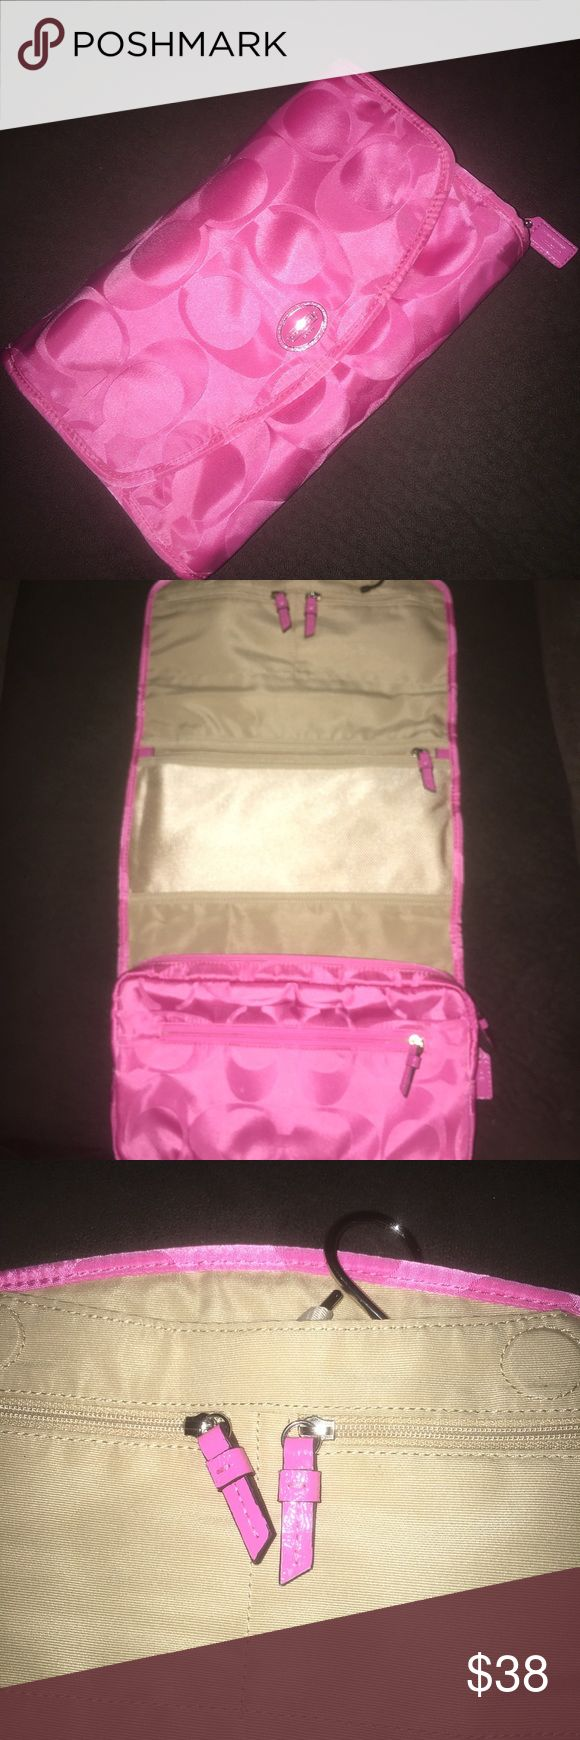 Coach Signature Travel Case Hanging case perfect for jewelry and small accessories during travel. Could also be used as a toiletry bag. In excellent condition. Coach Accessories